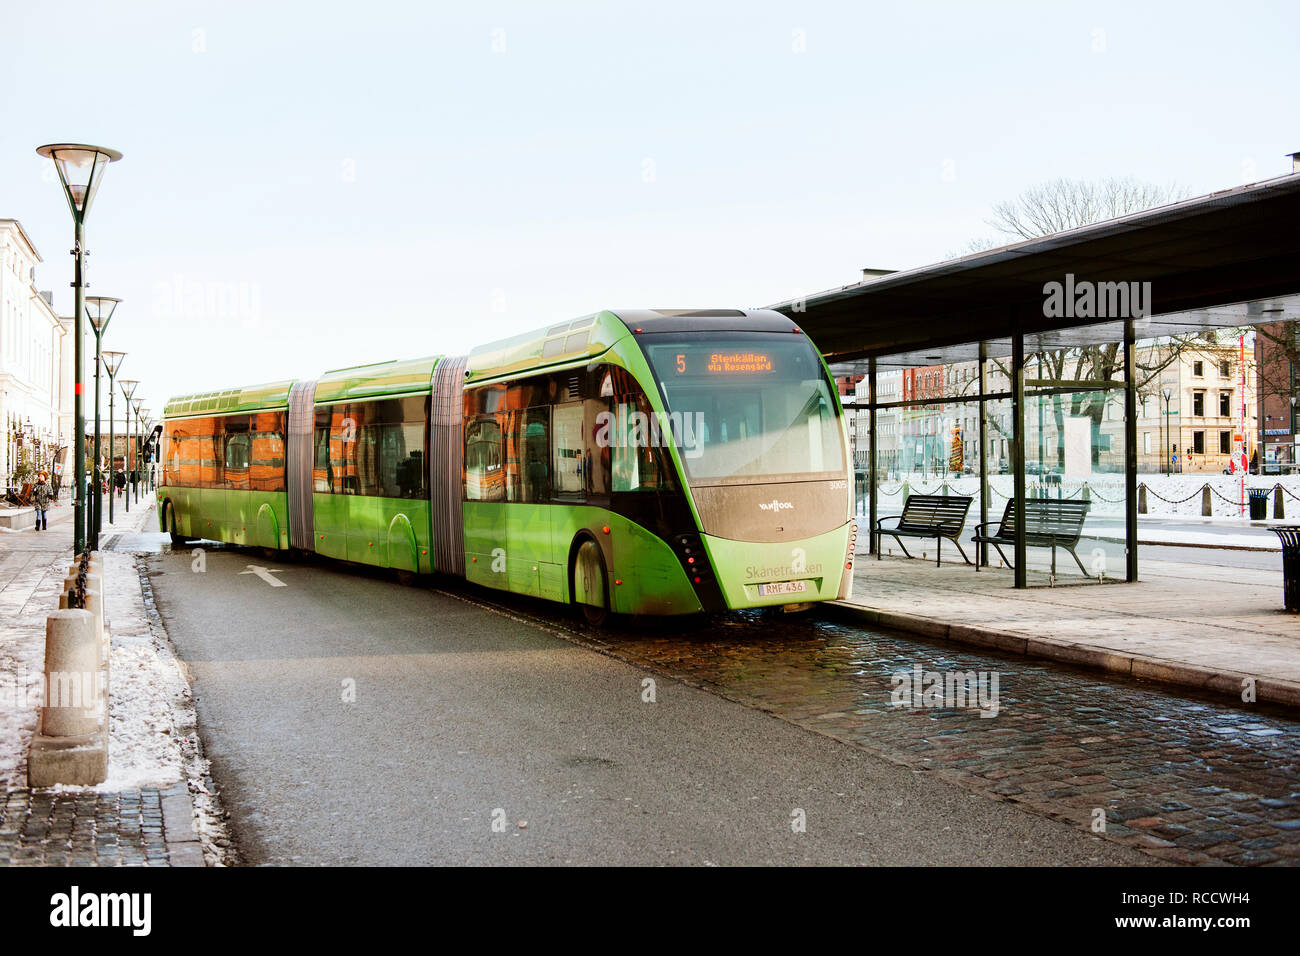 MALMO, SWEDEN - 29 DEC 2014: Green articulated bus Van Hool 324H Exequicity 24 Hybrid operated by Skanetrafiken arriving in bus station on a cold winter day - ecologic public transportation line 5 in Malmo  - Stock Image